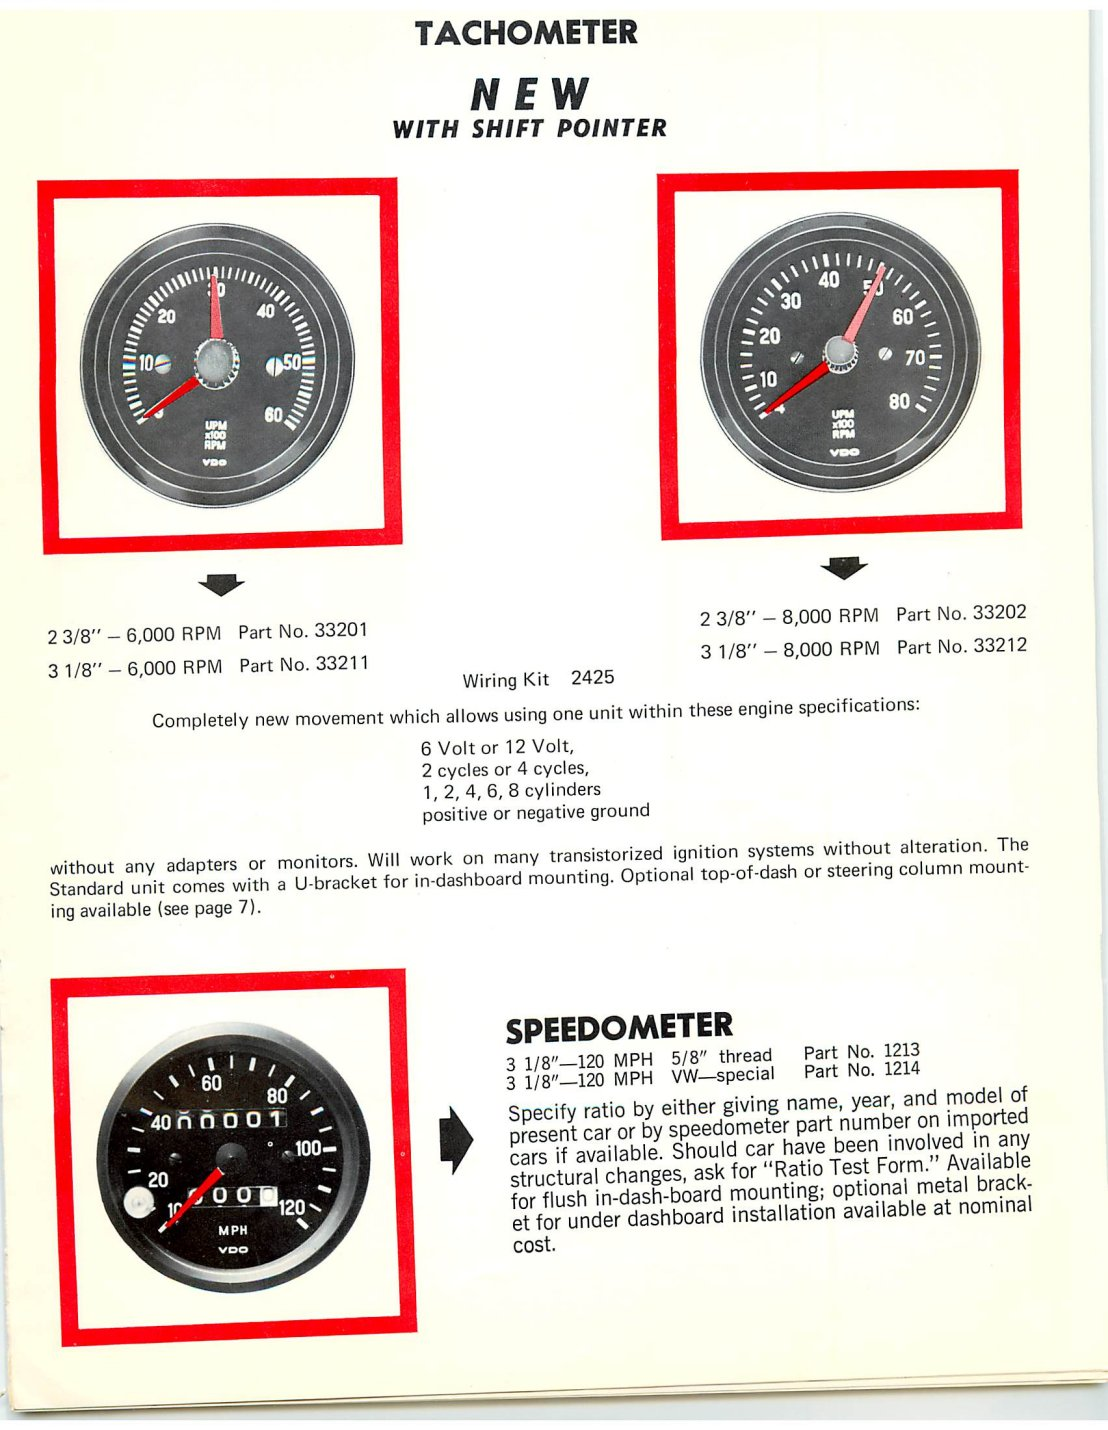 thesamba com beetle late model super 1968 up view topic farmall 12 volt wiring diagram image may have been reduced in size click image to view fullscreen